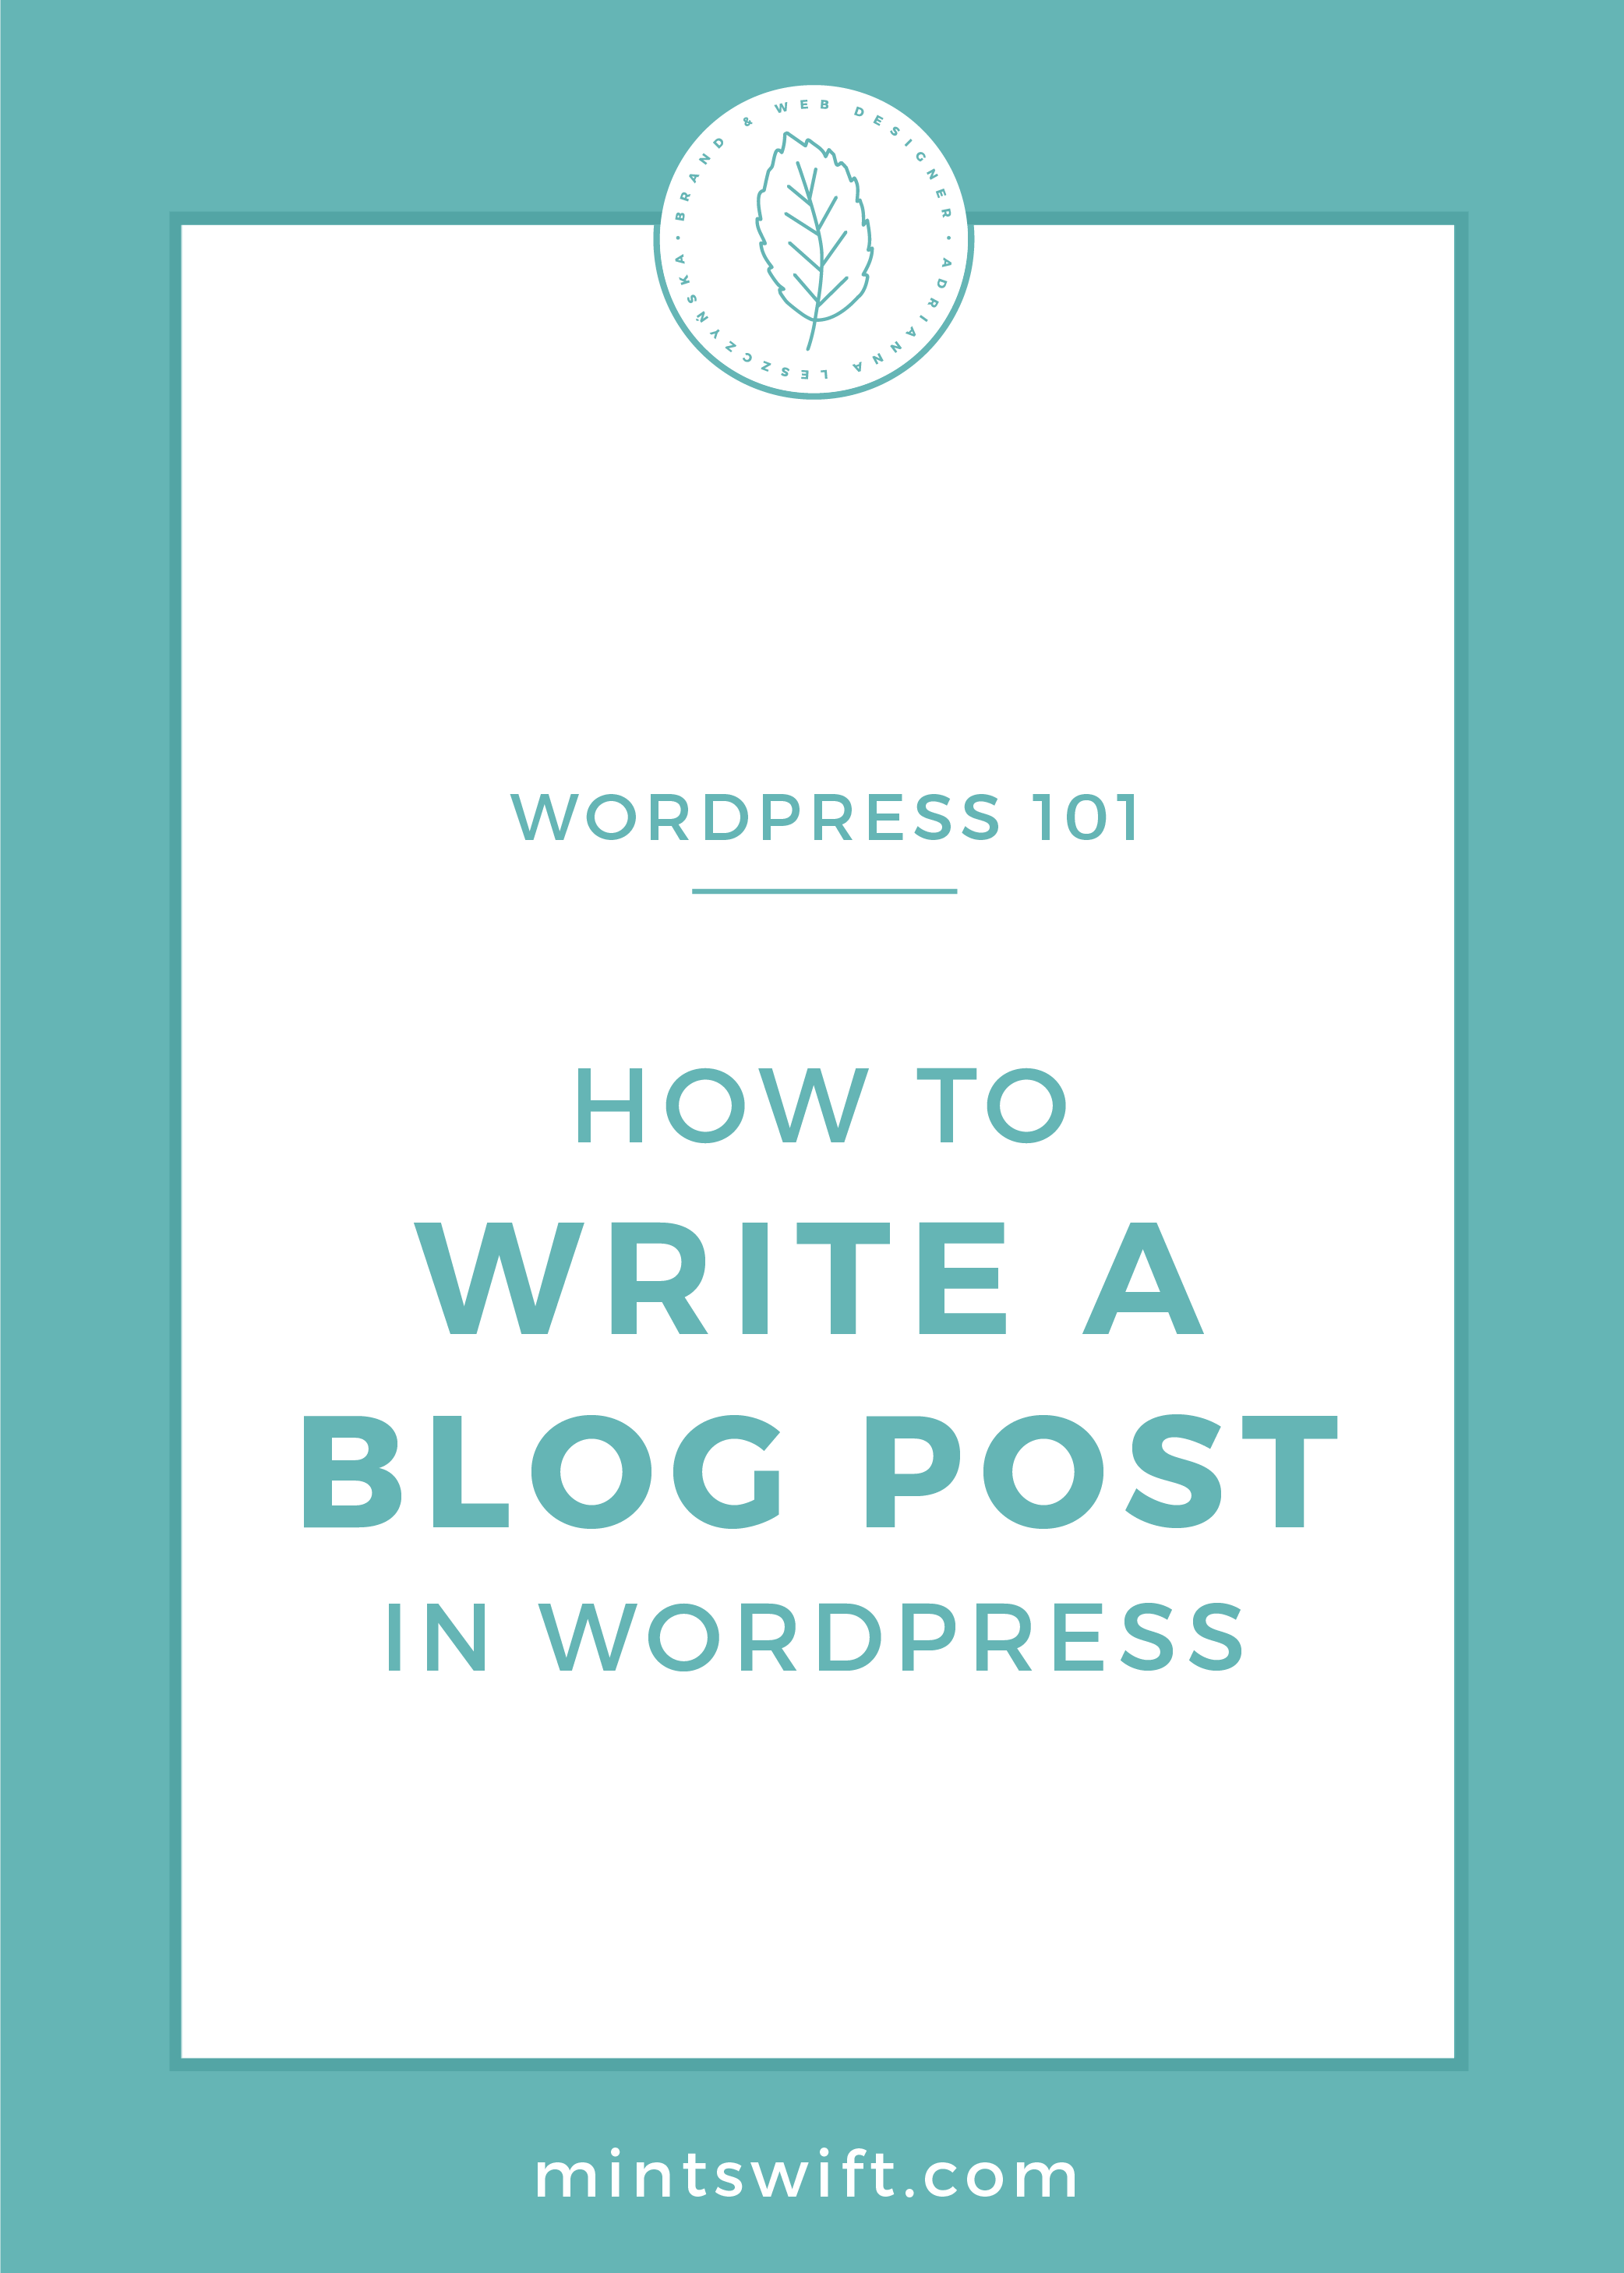 How to Write a Blog Post in WordPress by MintSwift